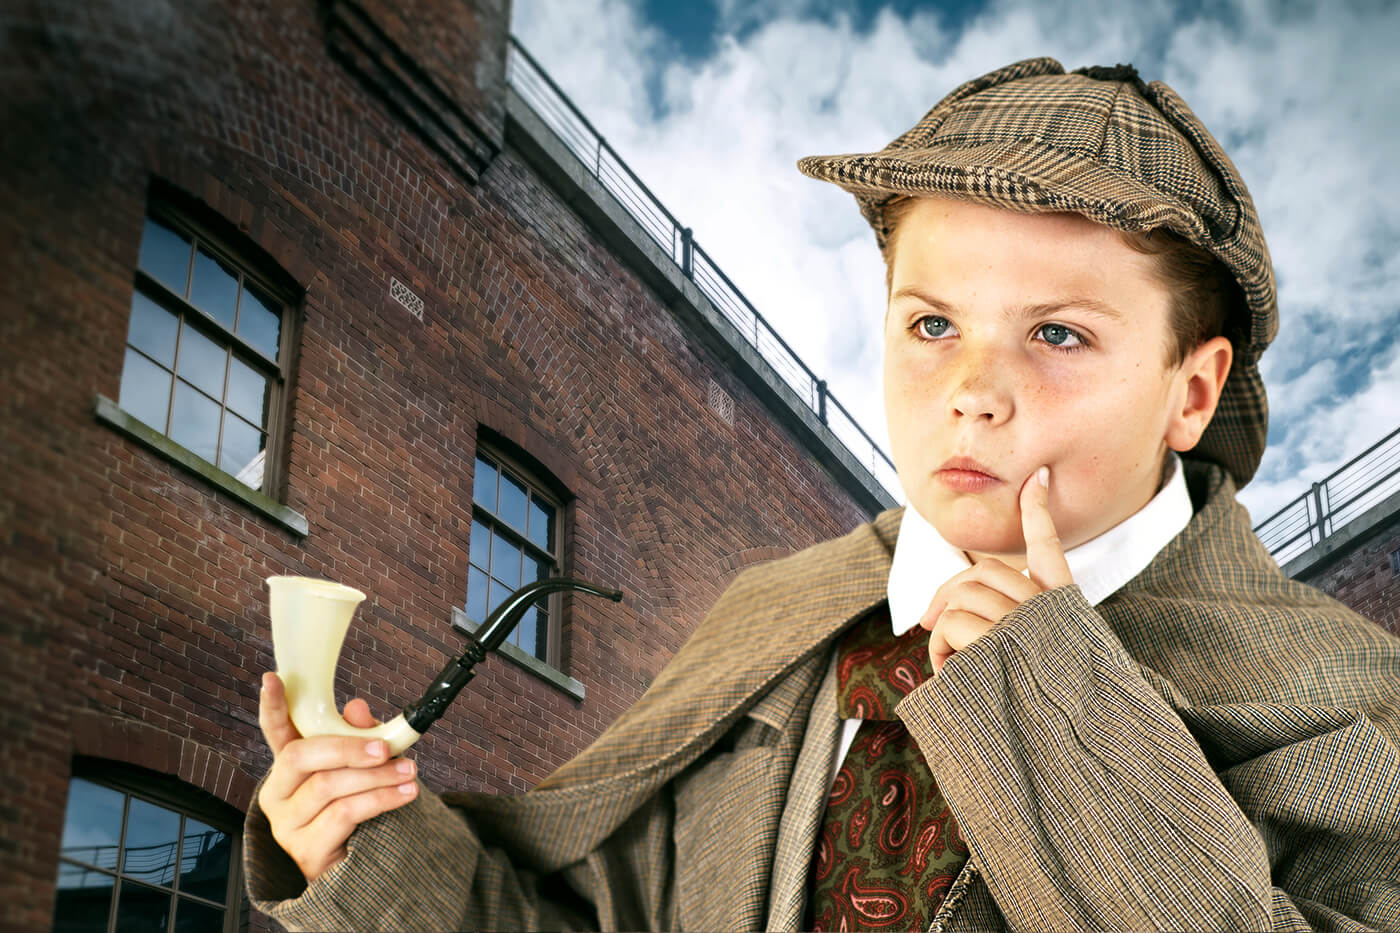 A child dressed as sherlock holmes with the Fort in the background